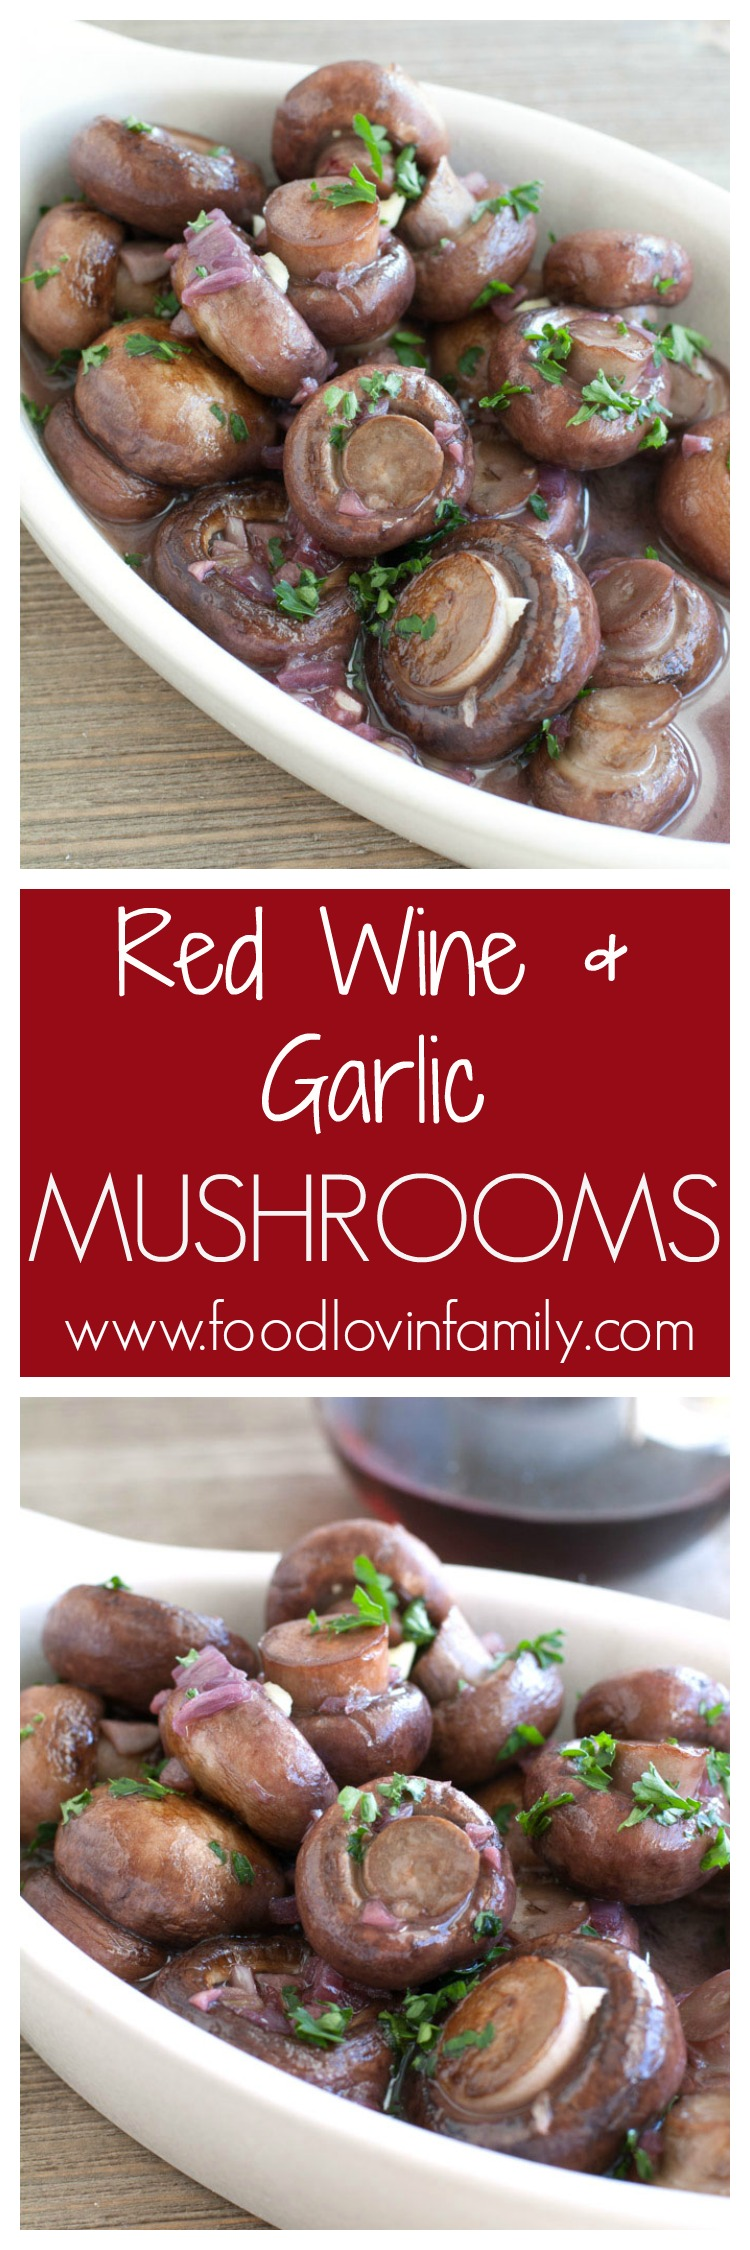 Red wine and garlic mushrooms is a simple and elegant side dish. Mushrooms cooked in butter, red wine, garlic and shallots.